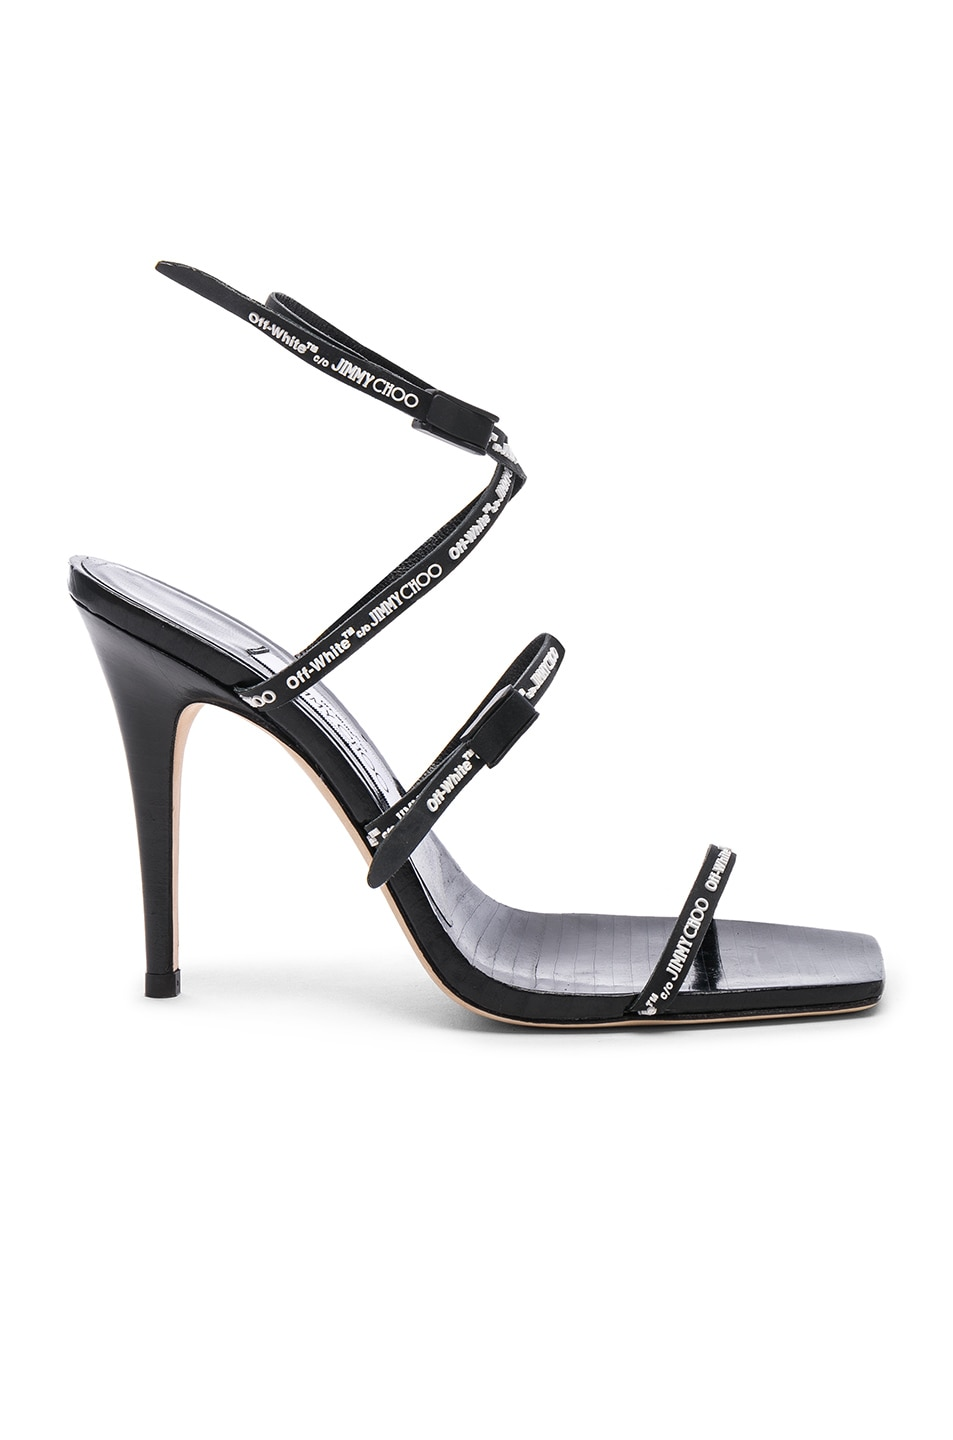 6f89d55d20 Image 1 of OFF-WHITE x Jimmy Choo Jane Sandal in Black